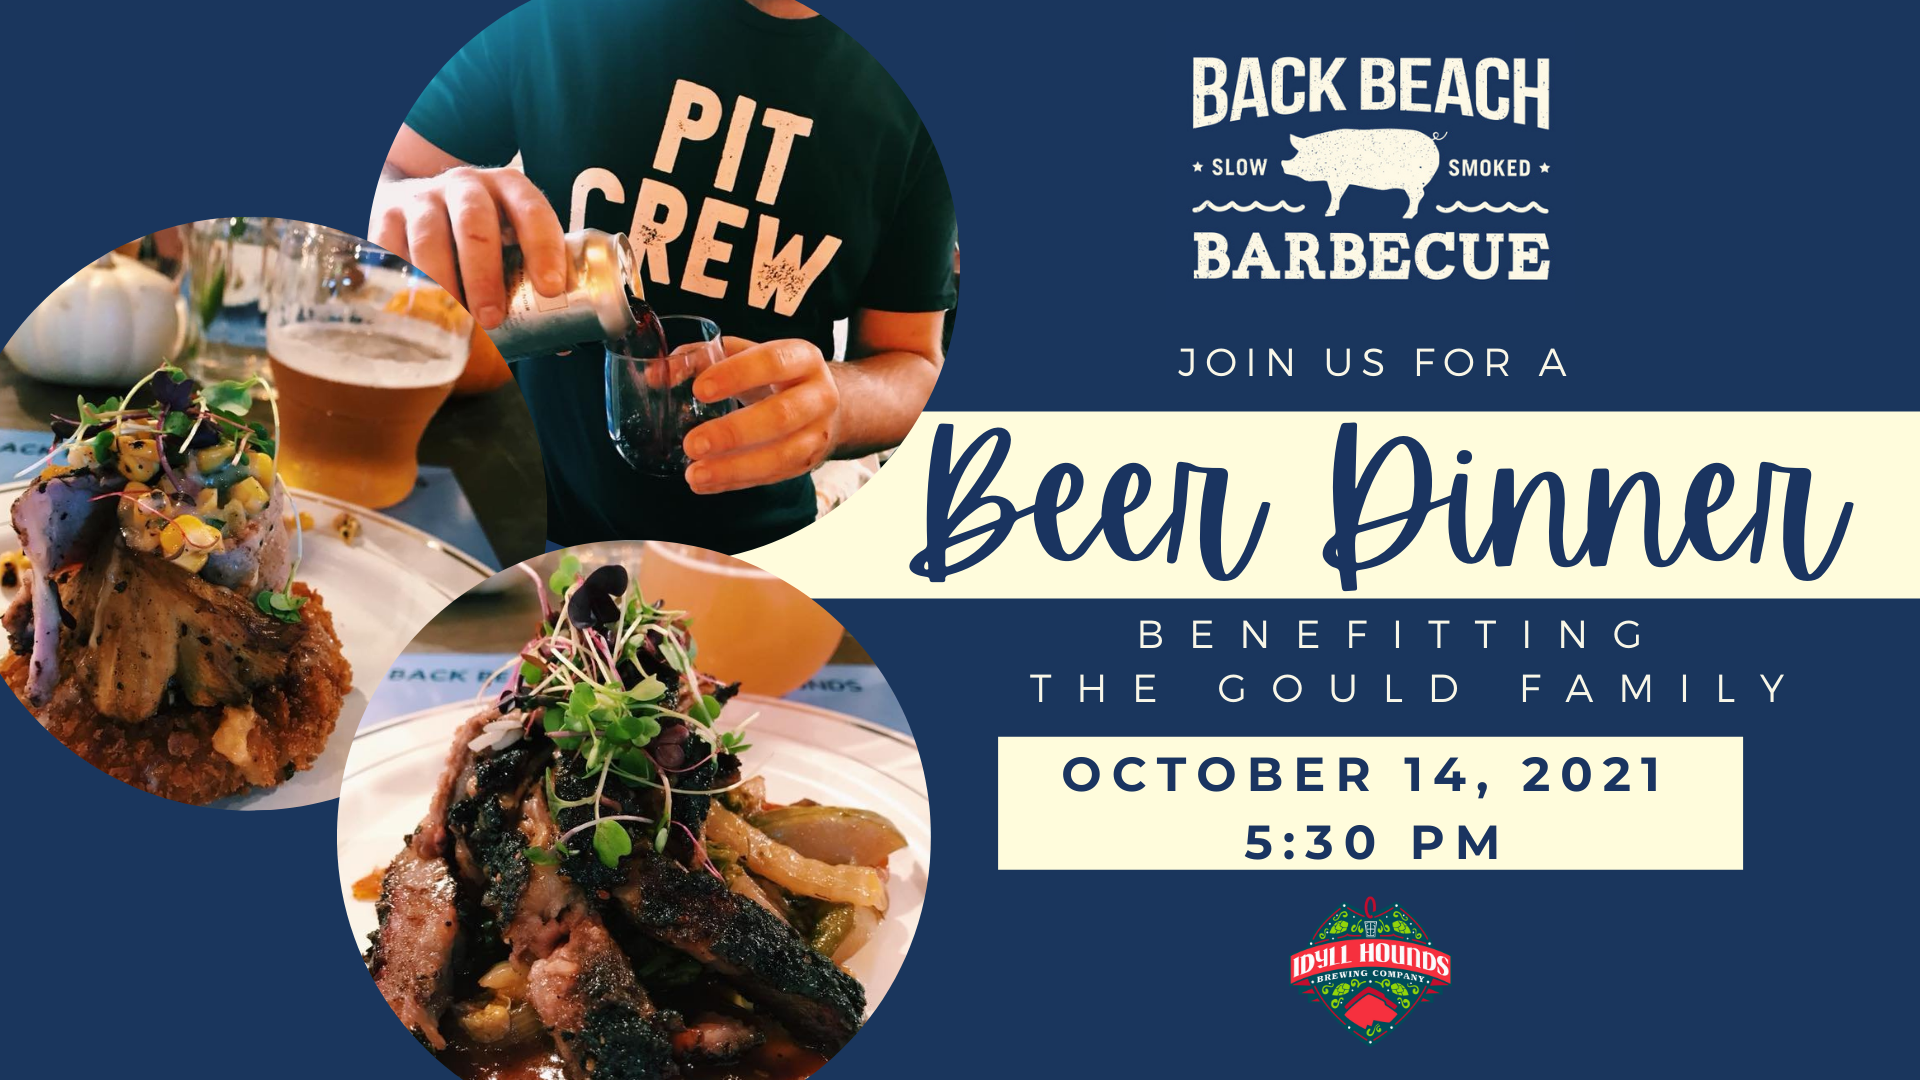 Back Beach Barbecue and Idyll Hounds Brewing Company to Host Beer Dinner Benefiting Local Family